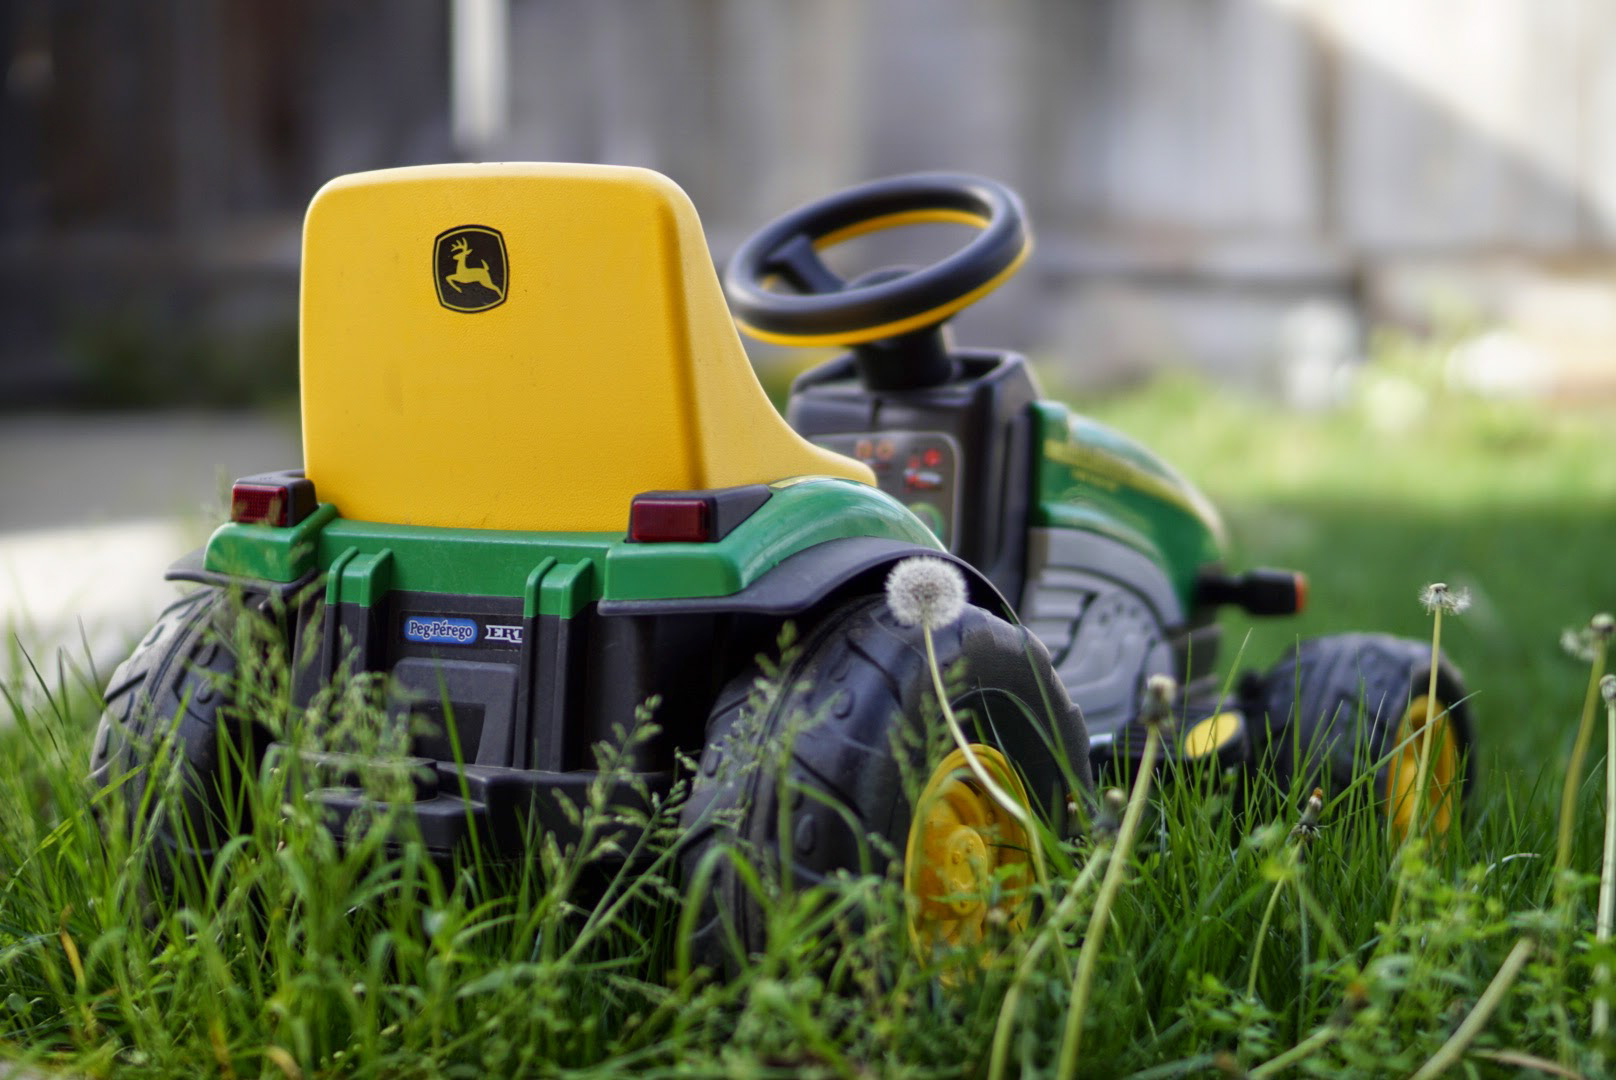 Bokeh Effect Tractor in the Grass